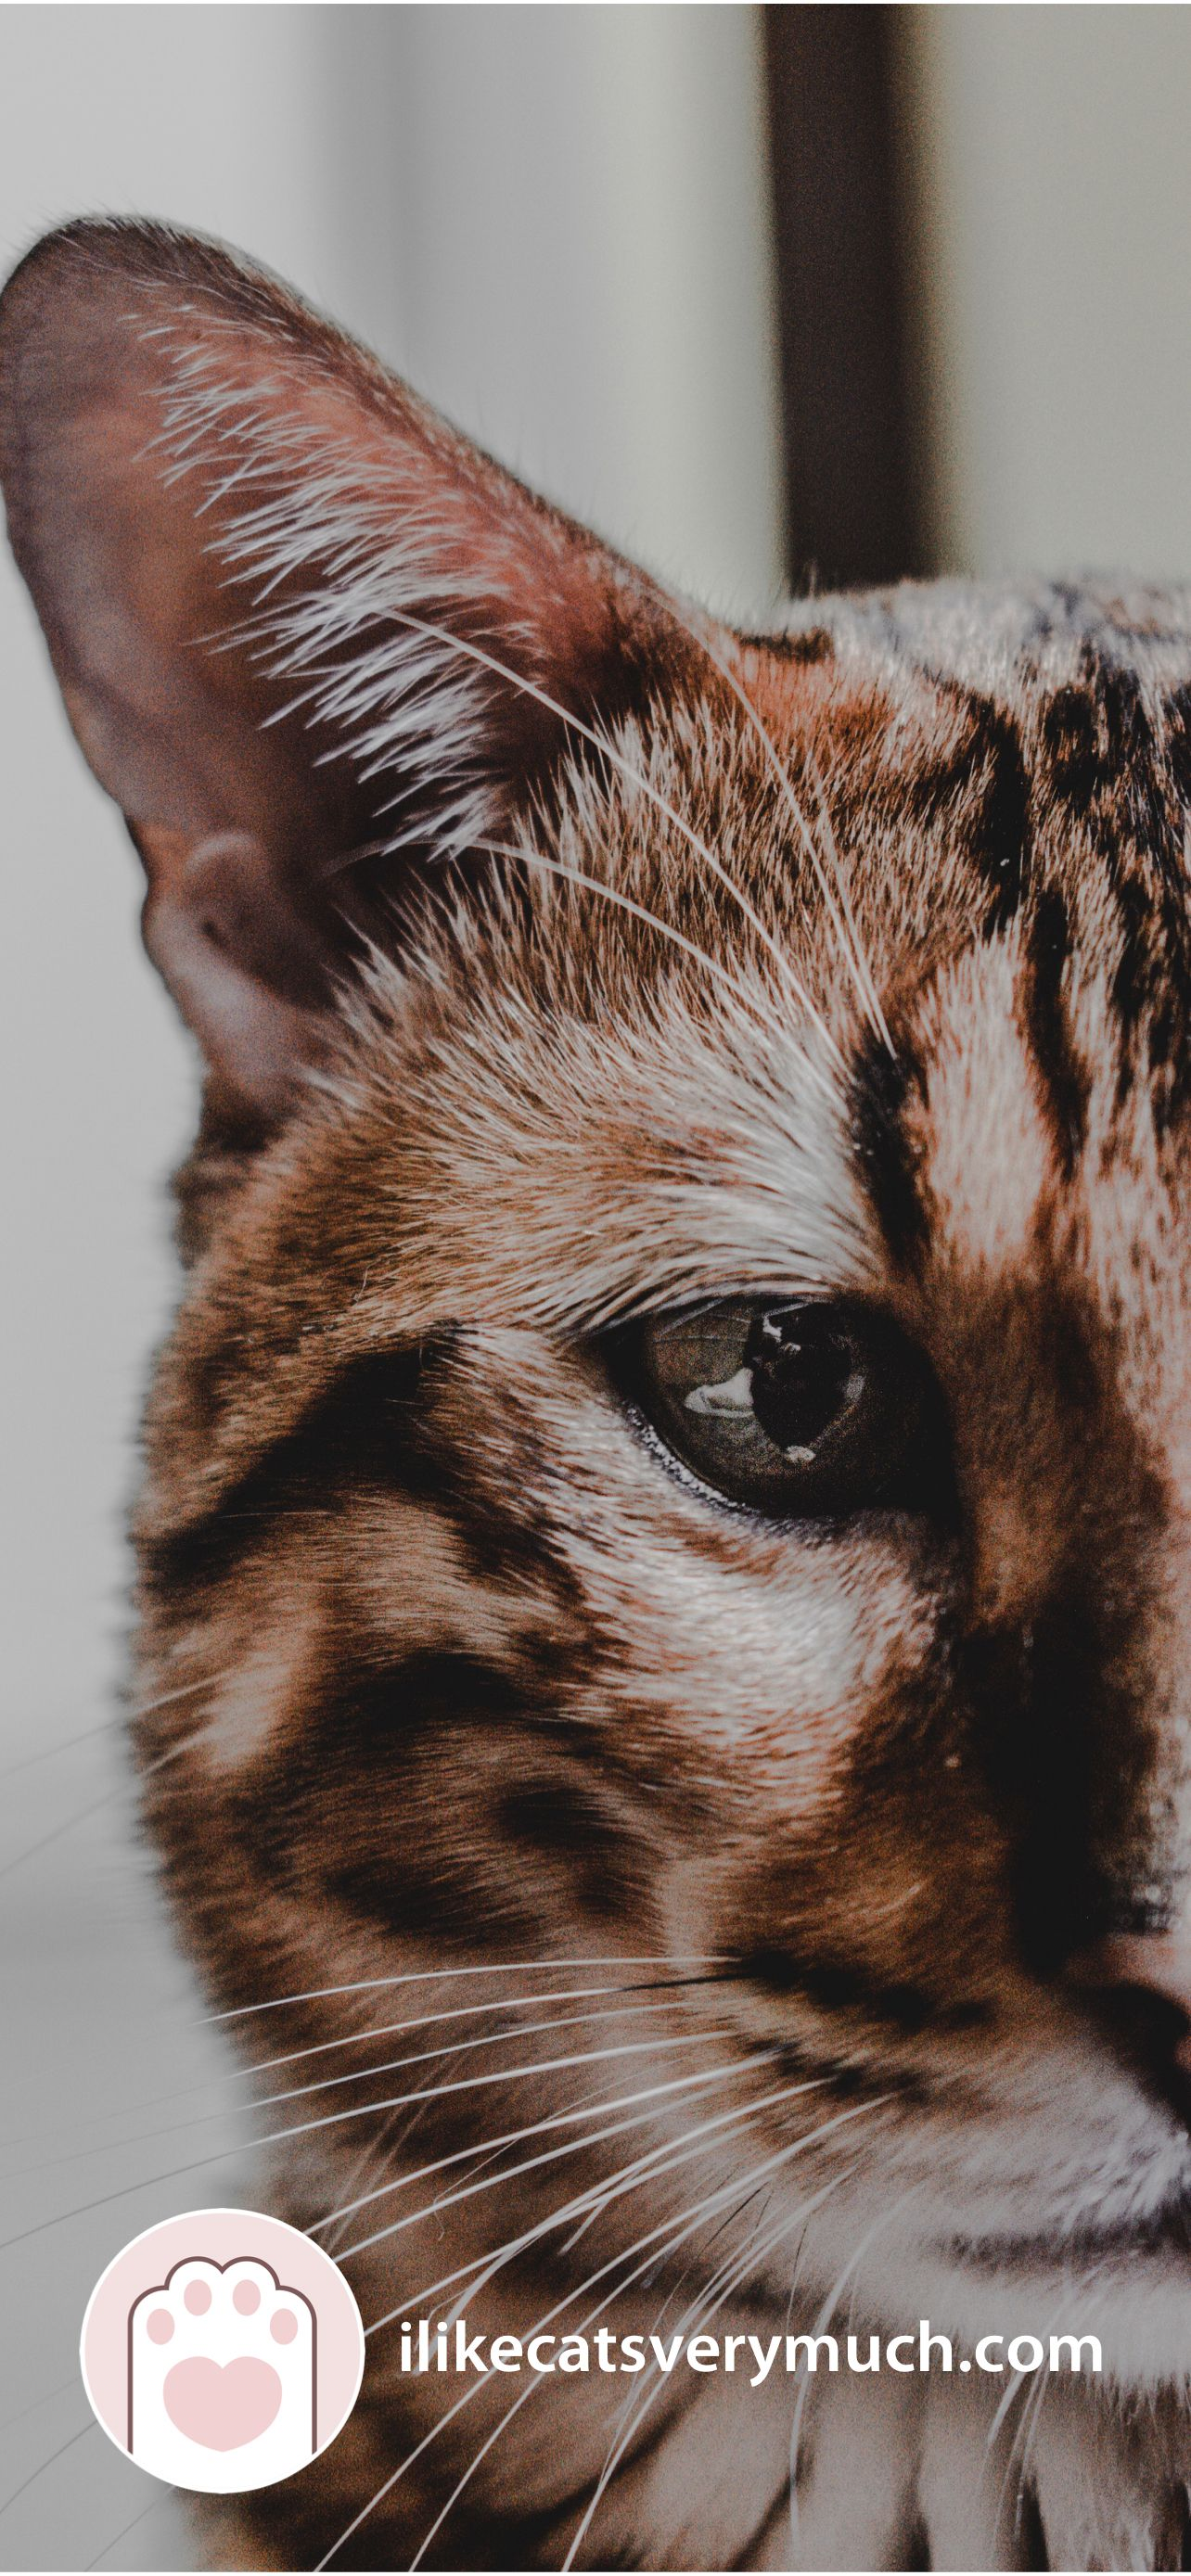 Cat Wallpapers For Phone 2021 I Like Cats Very Much In 2021 Cat Wallpaper Cats Cute Cat Wallpaper